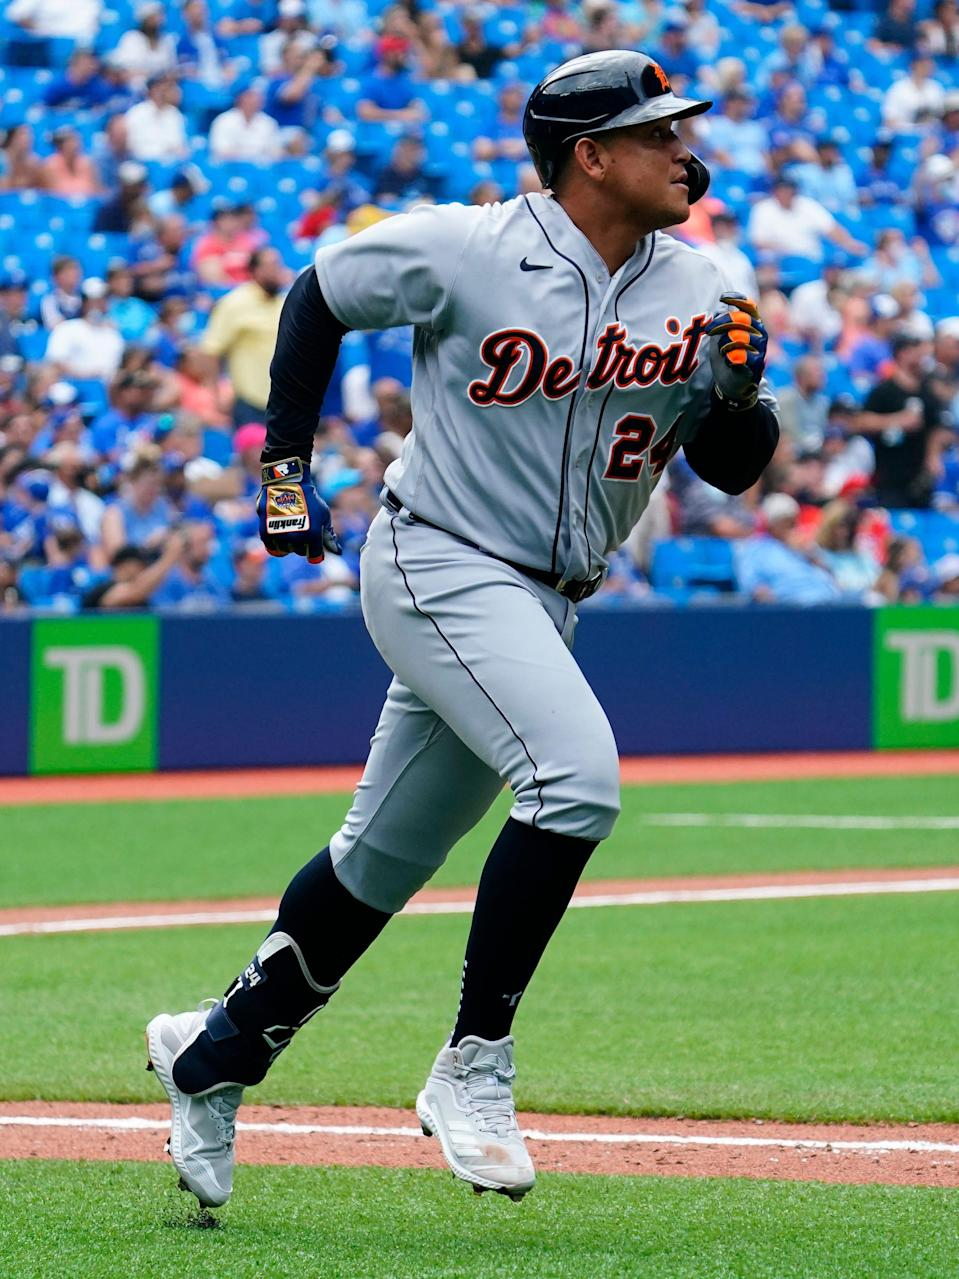 Detroit Tigers designated hitter Miguel Cabrera hits a solo home run, the 500th of his career, against the Toronto Blue Jays in the sixth inning at Rogers Centre, Sunday, Aug. 22, 2021.